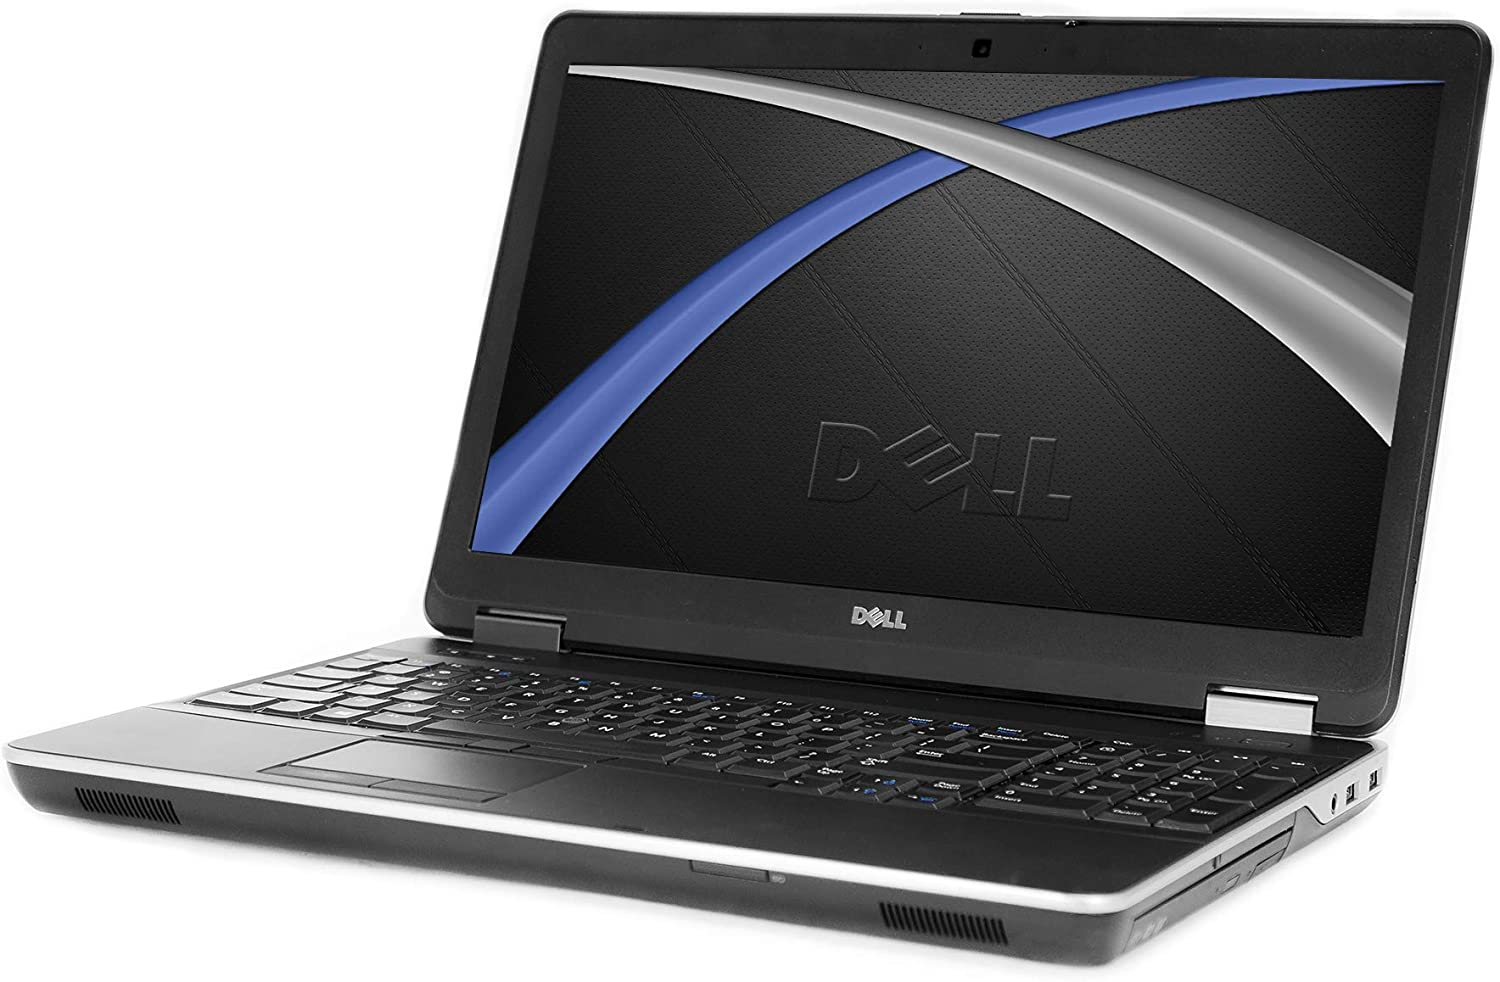 Dell Latitude E6540 15.6in Laptop, Core i7-4800MQ 2.7GHz, 16GB Ram, 250GB SSD, DVDRW, Windows 10 Pro 64bit, Webcam (Renewed)